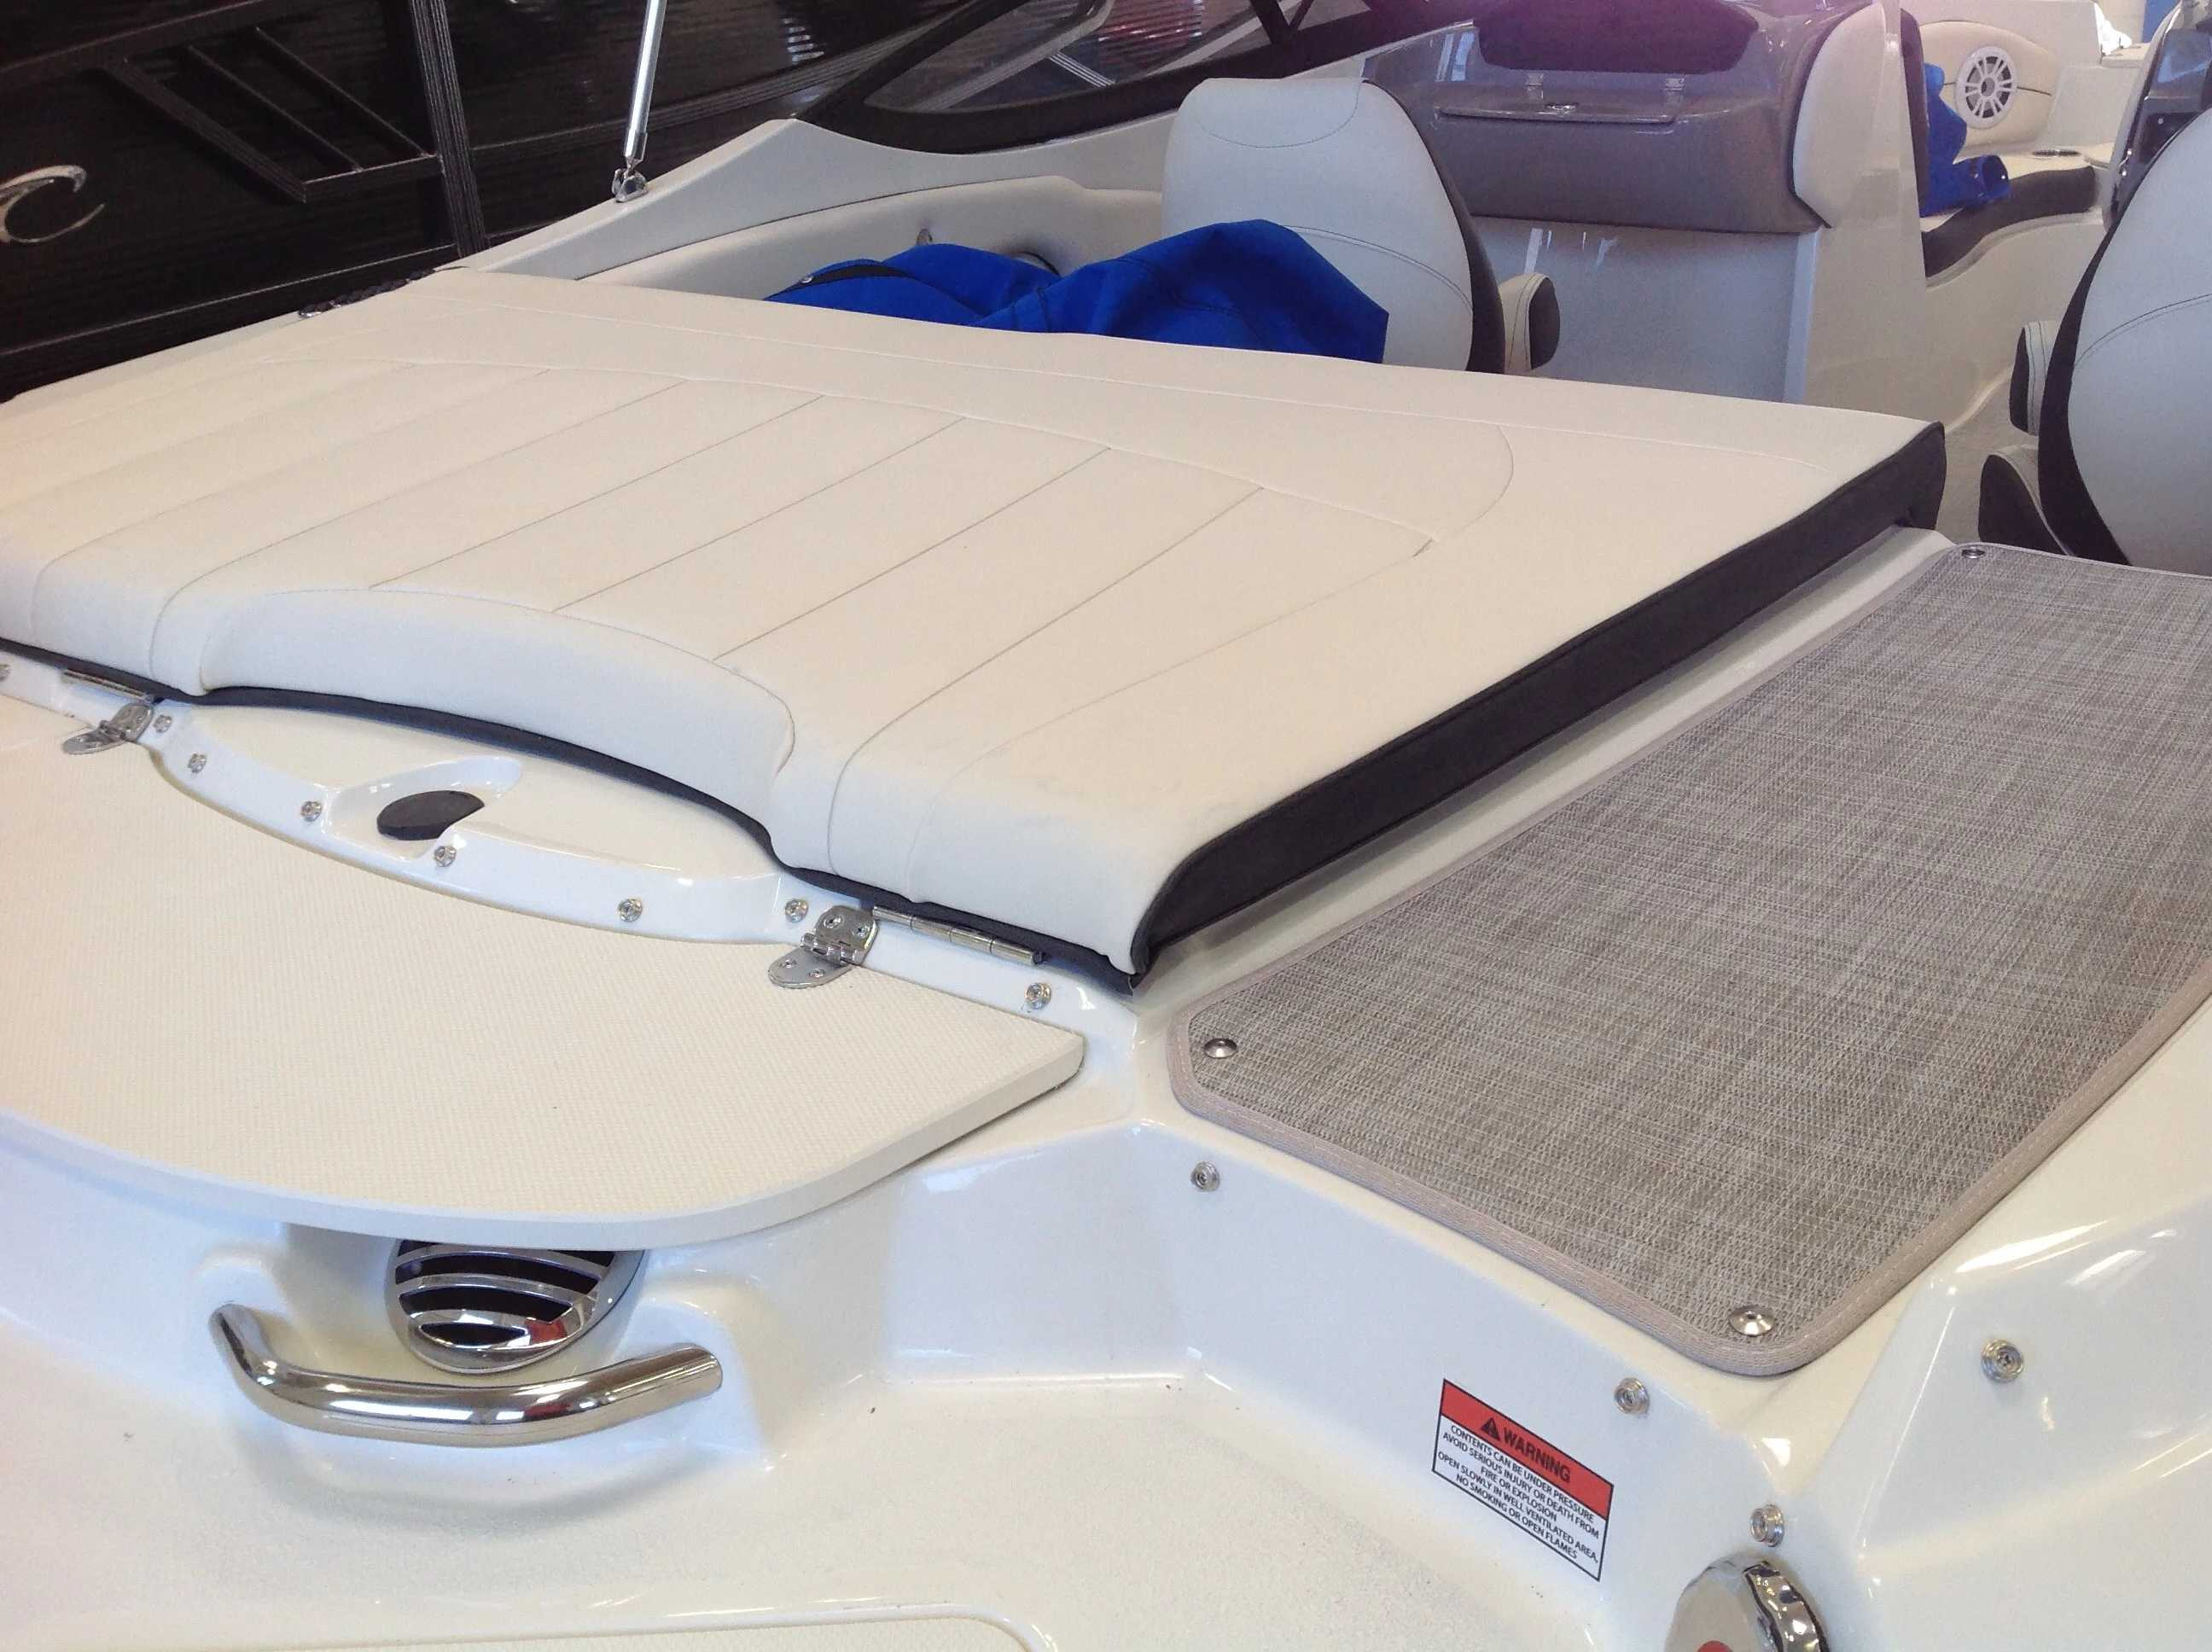 2021 Stingray boat for sale, model of the boat is 198lx & Image # 11 of 14